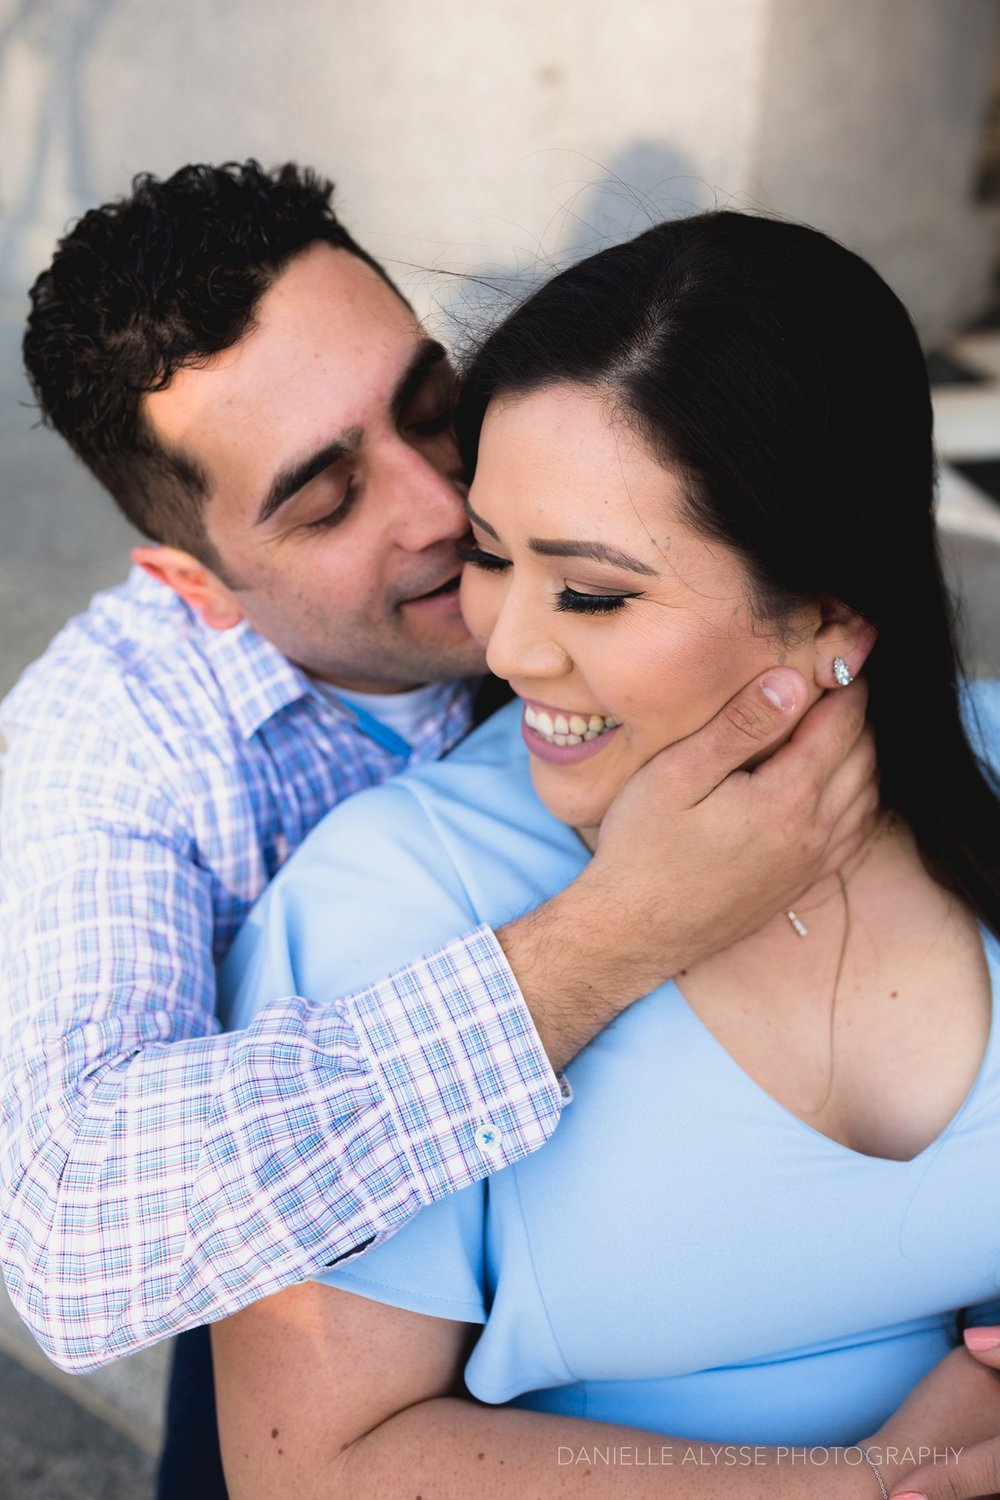 180324_engagement_lily_danielle_alysse_photography_downtown_sacramento_wedding_photographer_blog_42_WEB.jpg